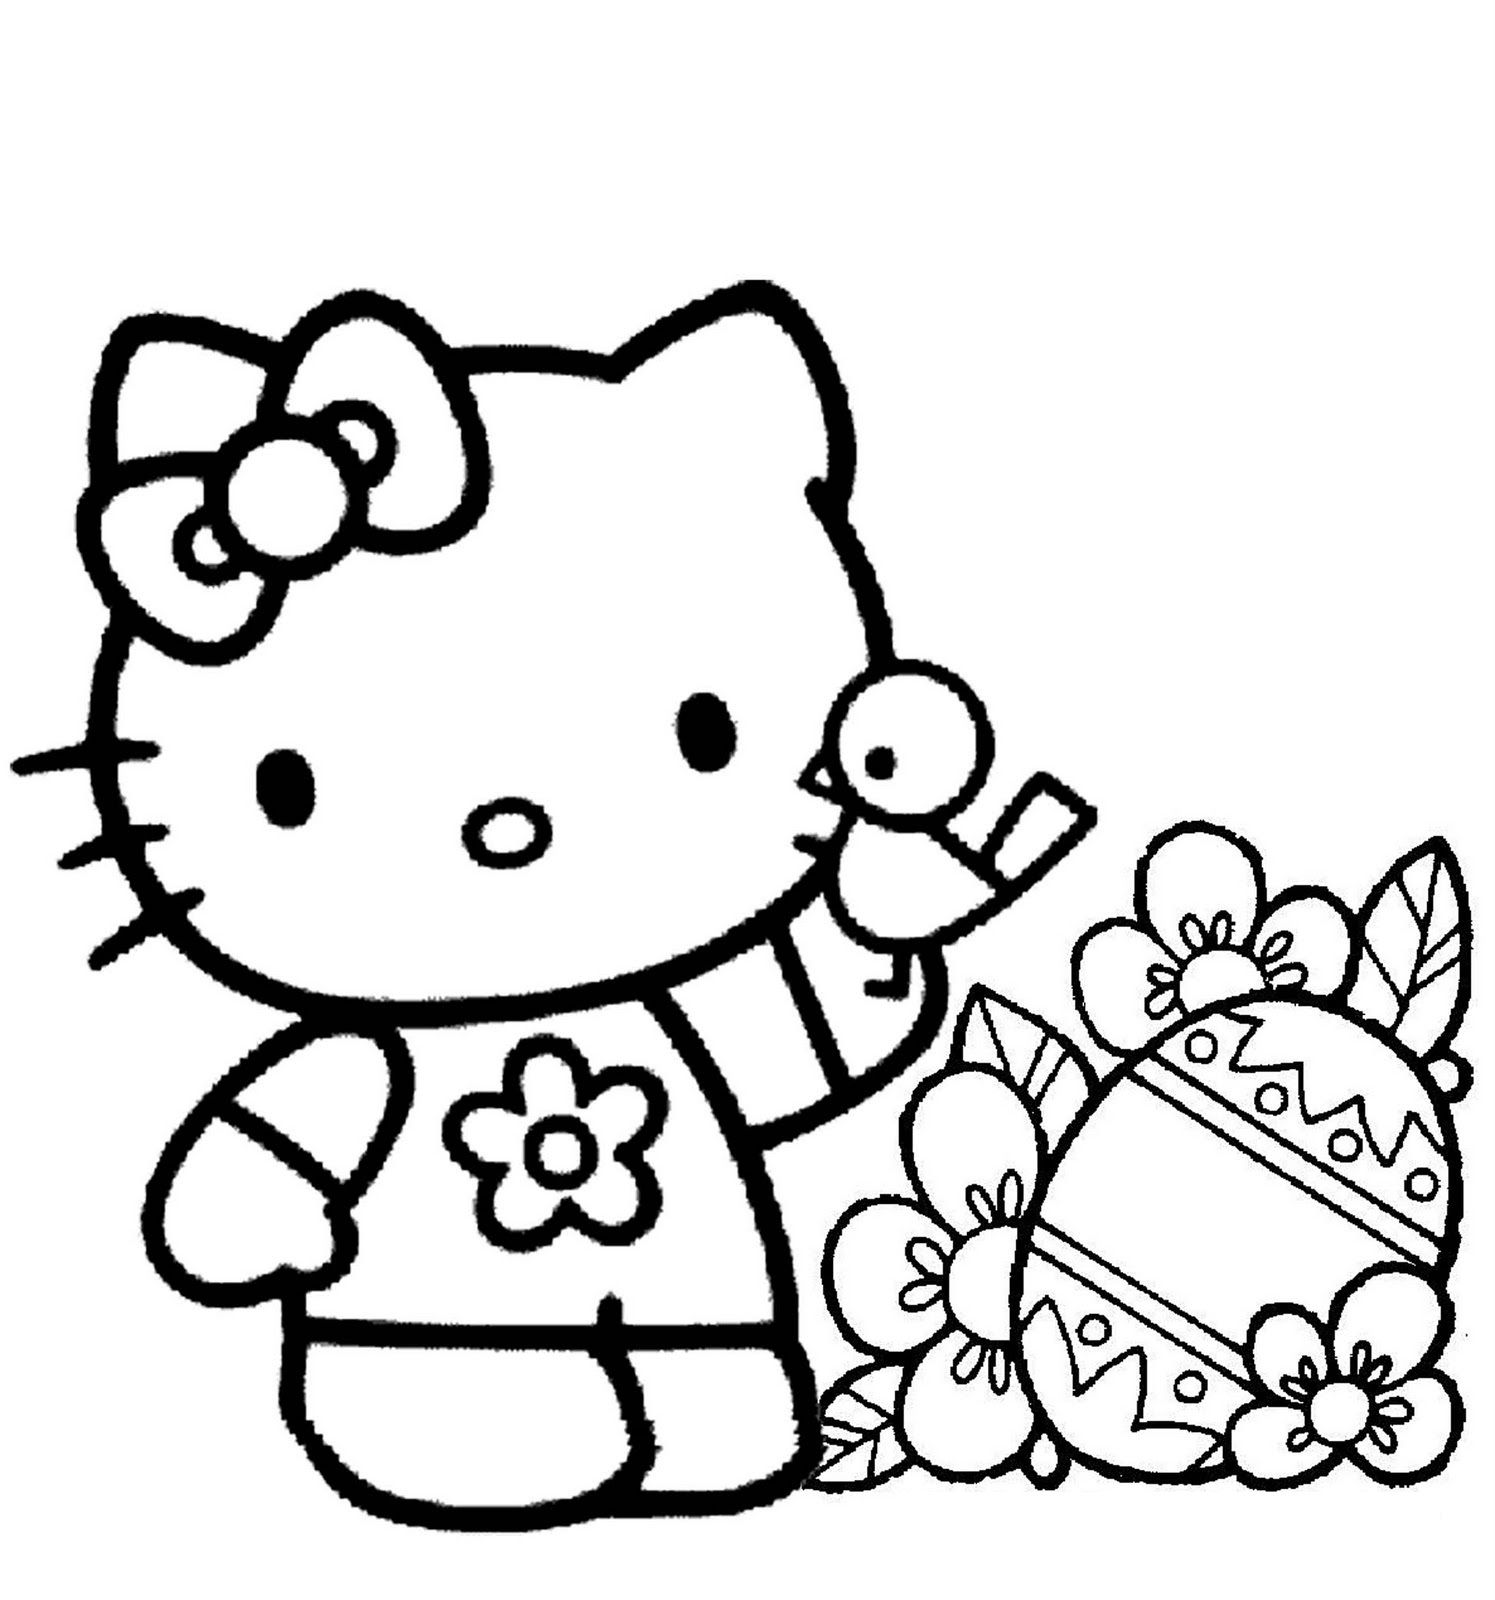 Free Printable Hello Kitty Coloring Pages For Kids Hello Kitty Colouring Pages Hello Kitty Coloring Free Easter Coloring Pages